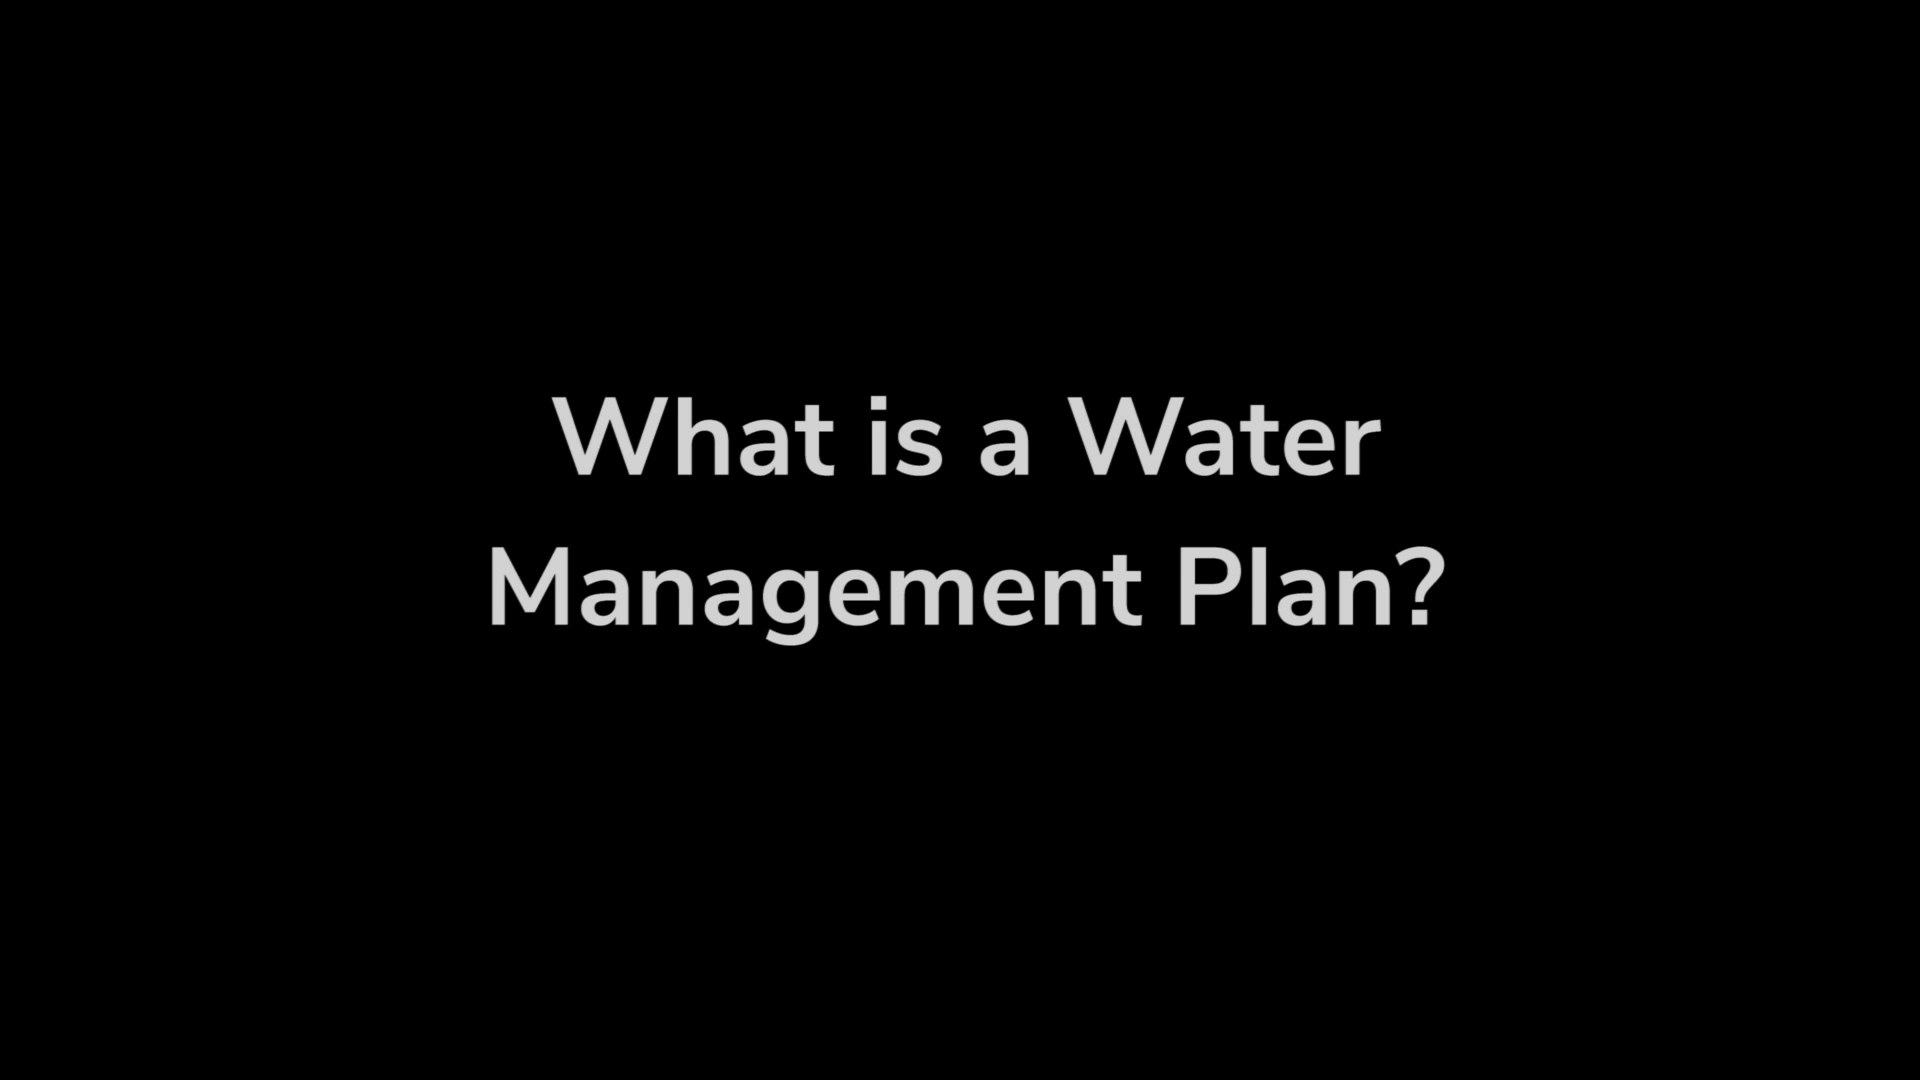 What is a Water Management Plan